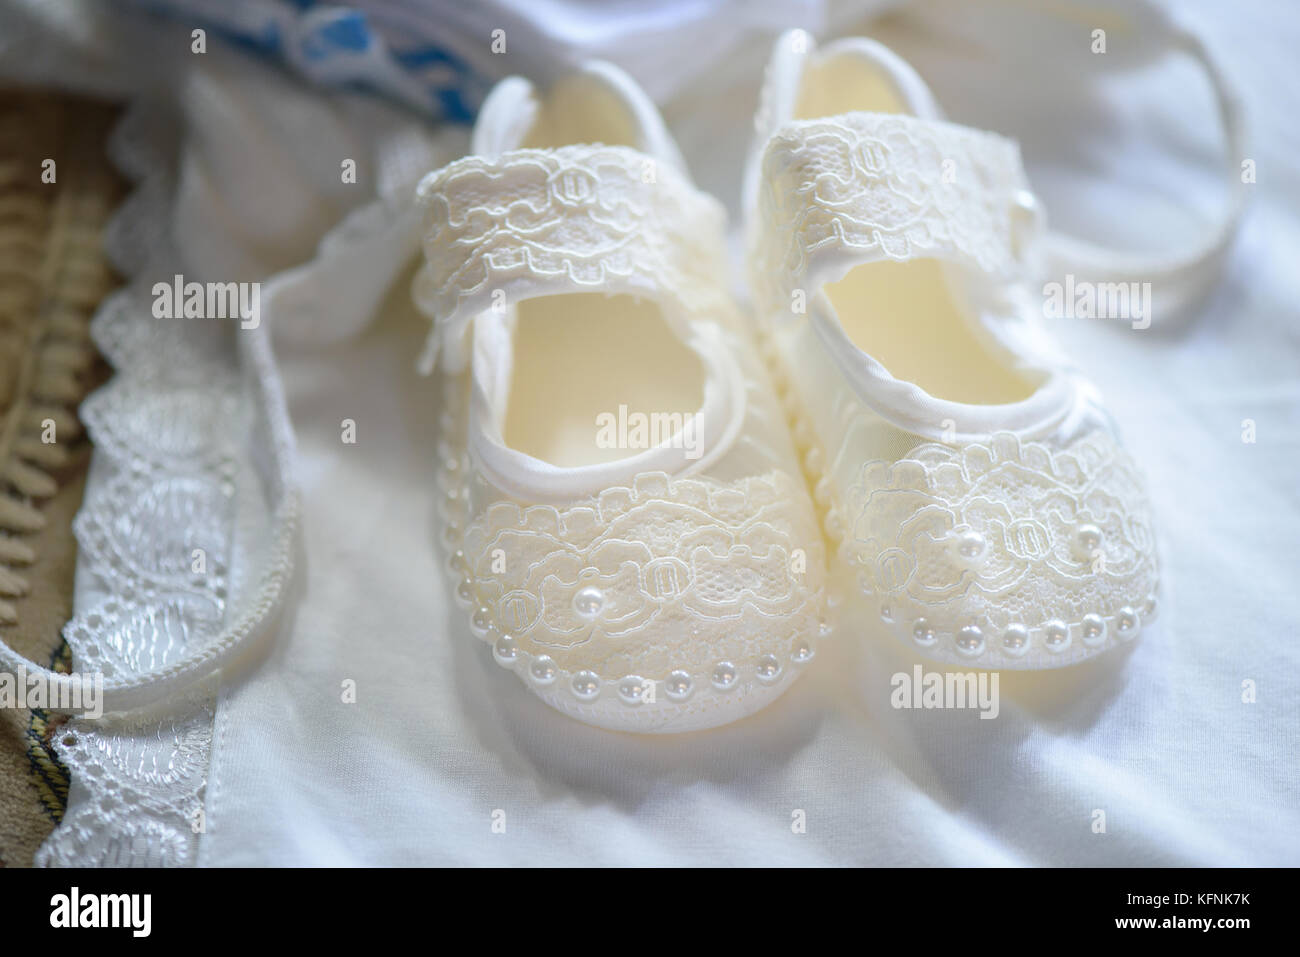 Cute baby girl lace and pearls shoes in